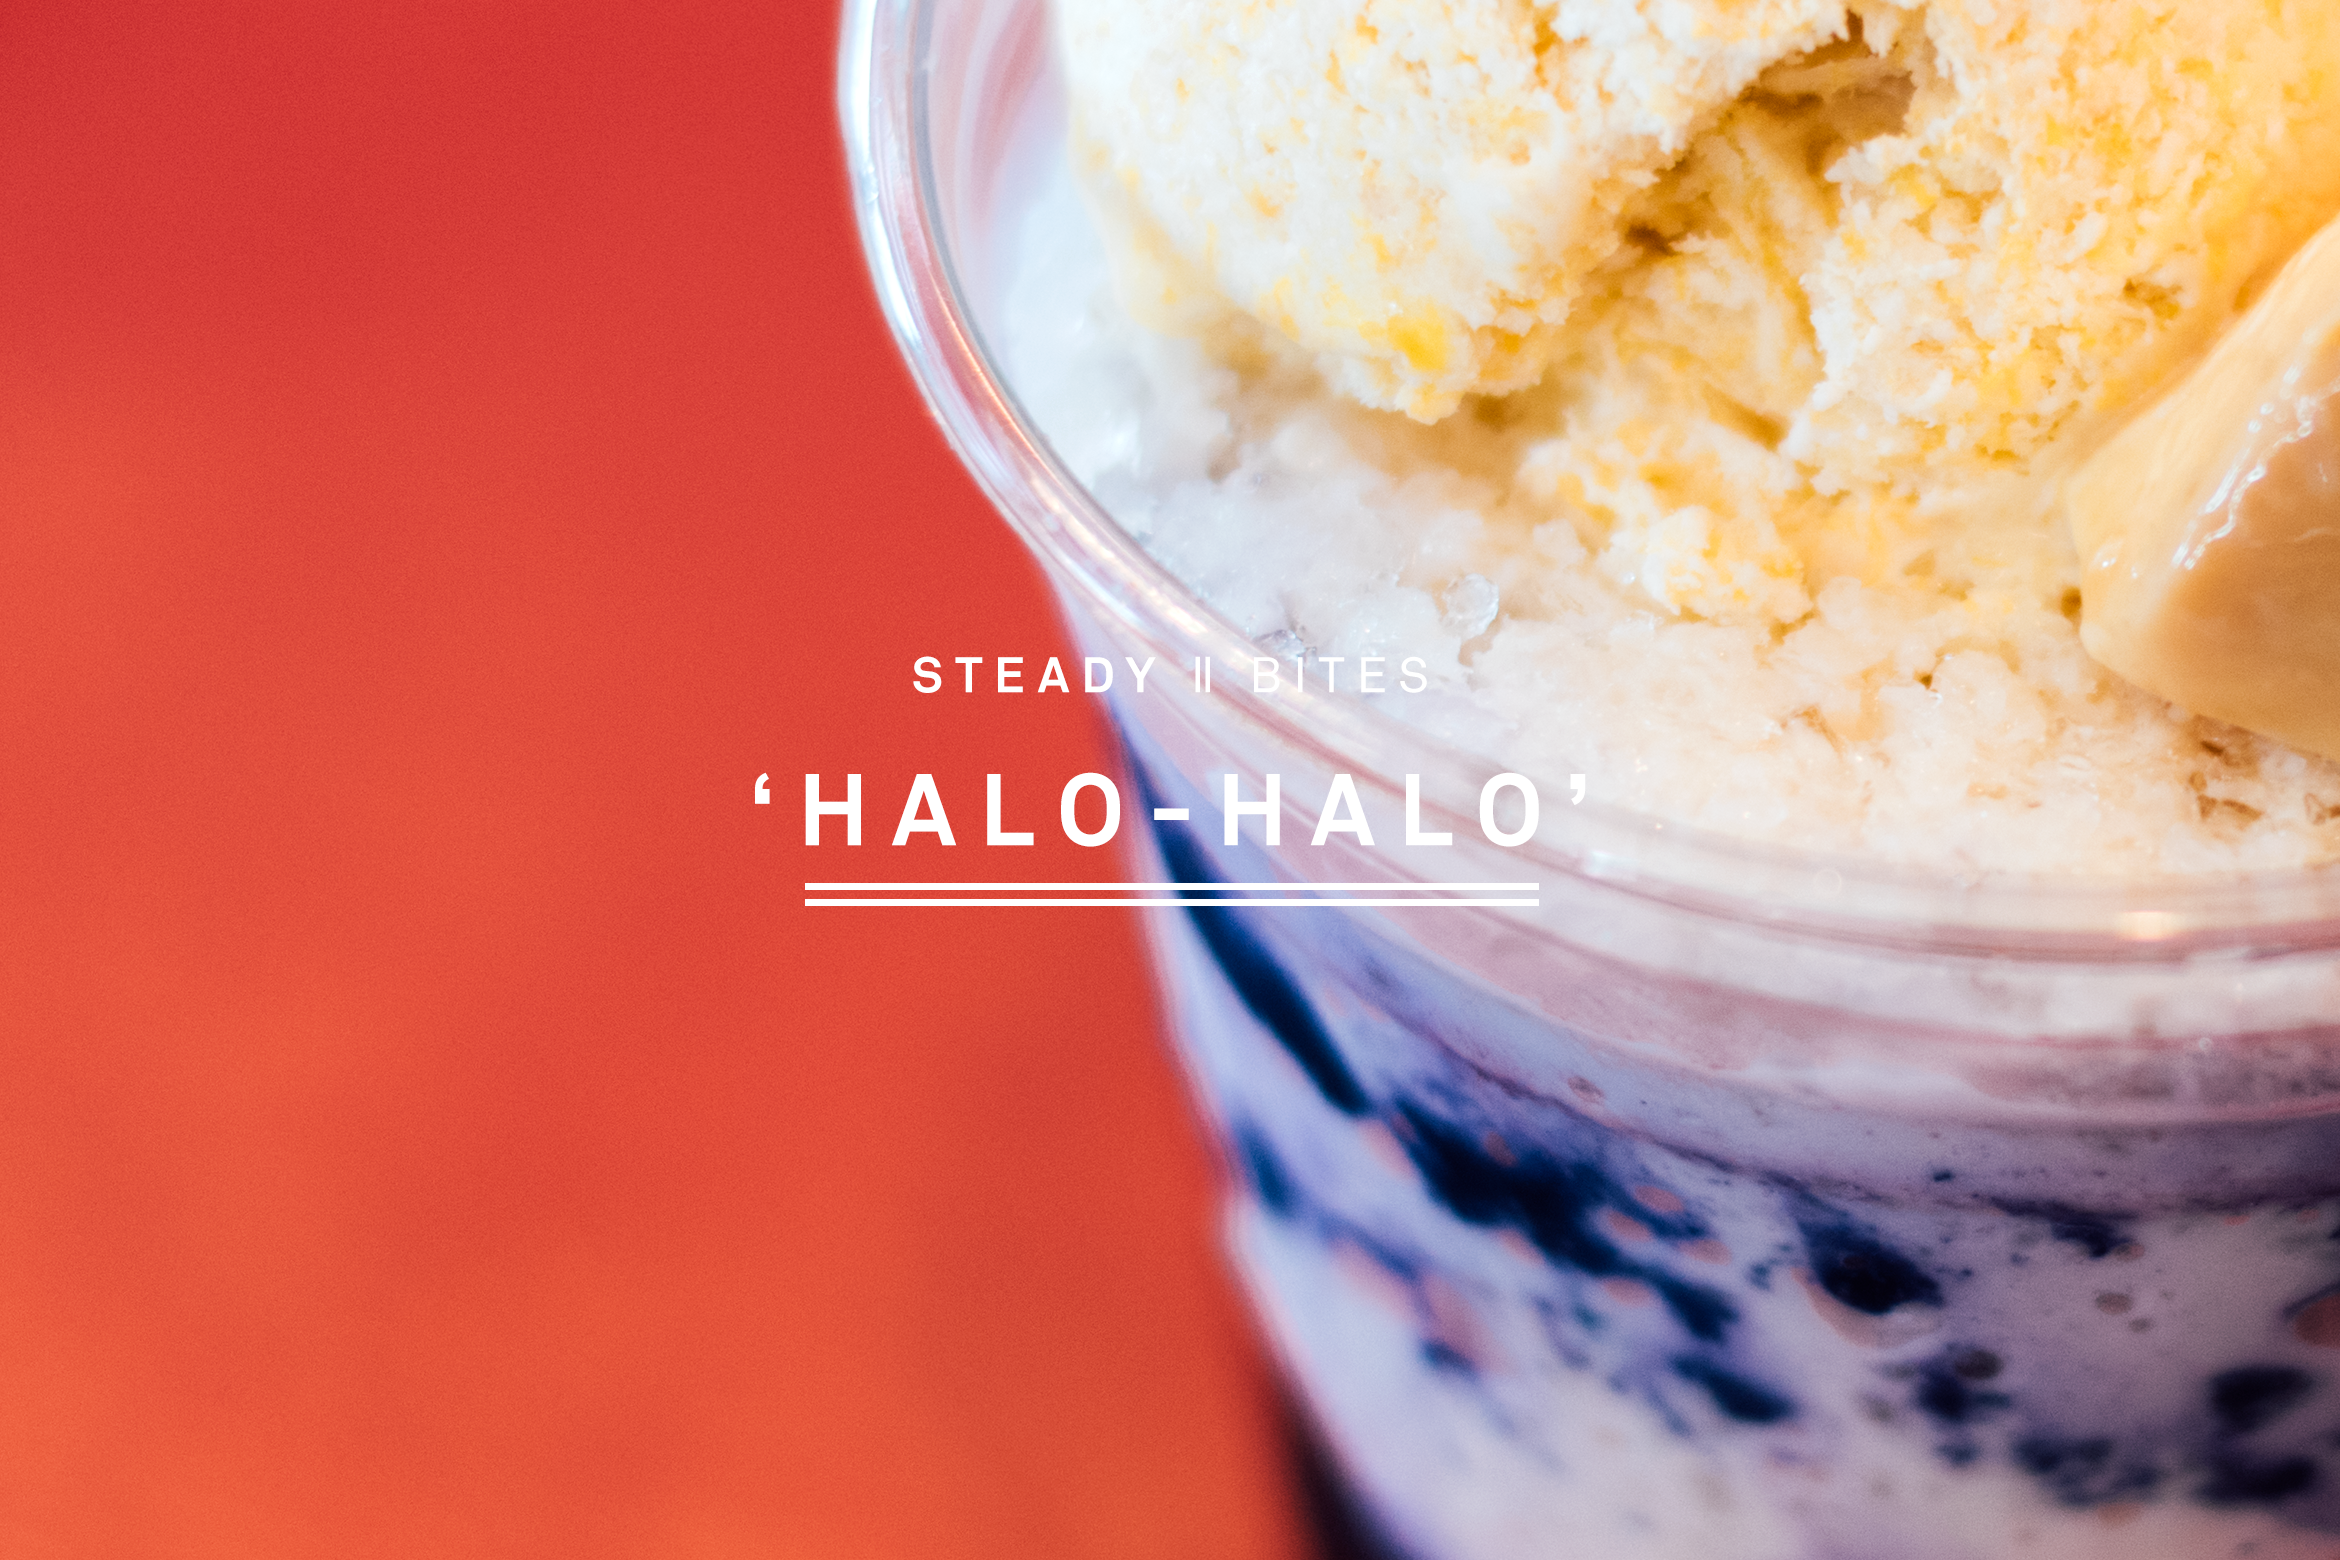 STEADY BITES: HALO-HALO